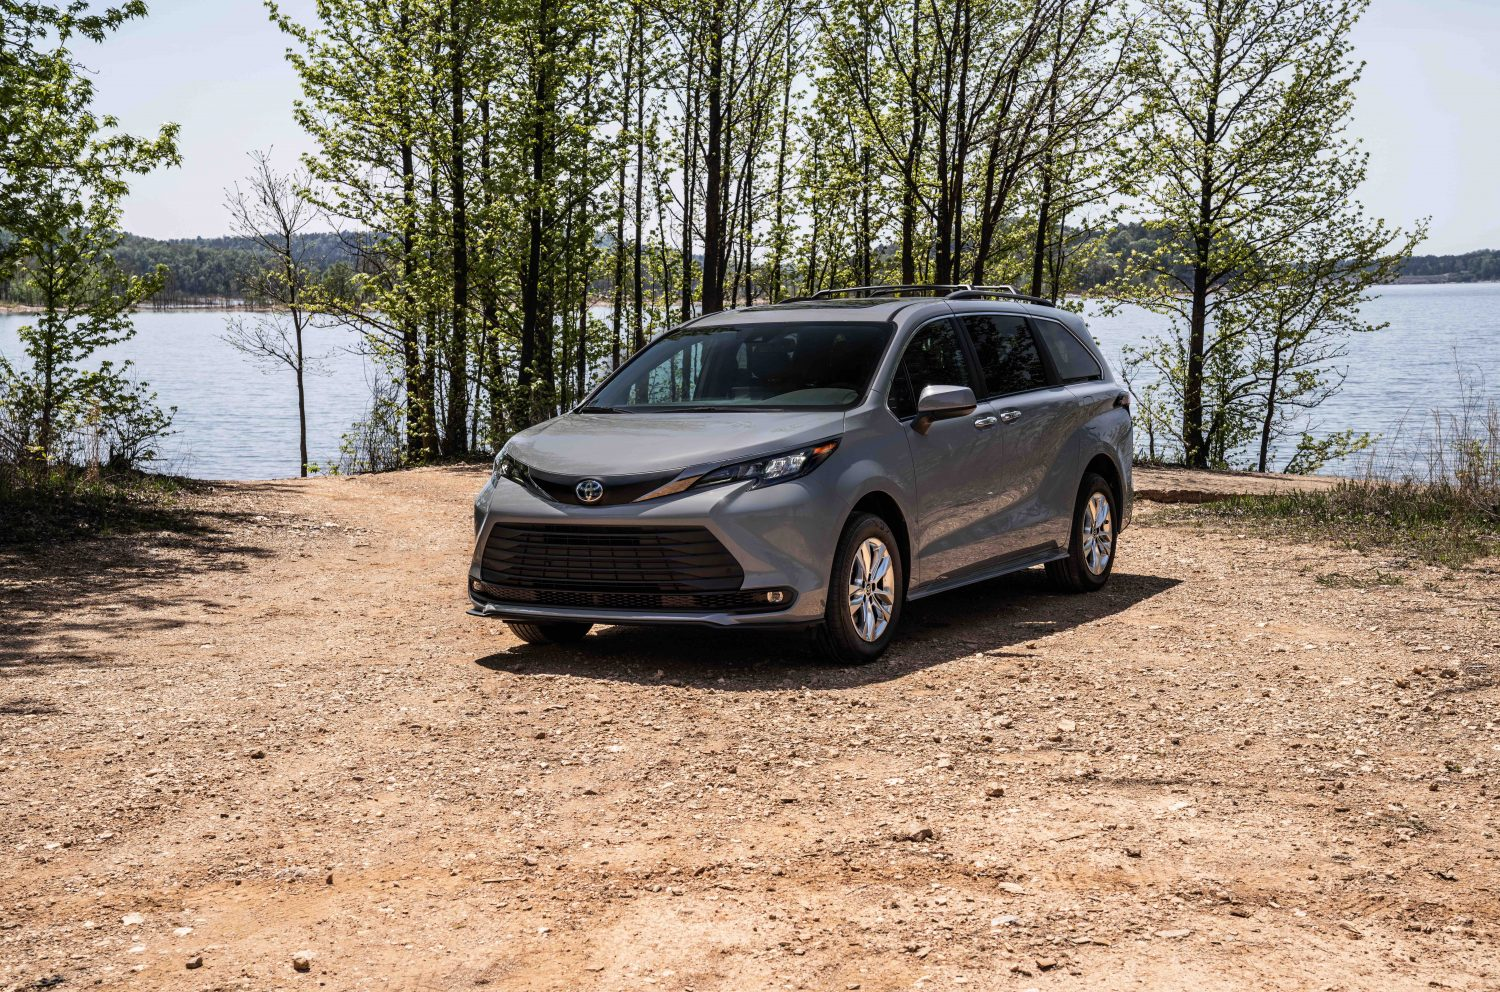 2022 Toyota Sienna specs and price in Nigeria